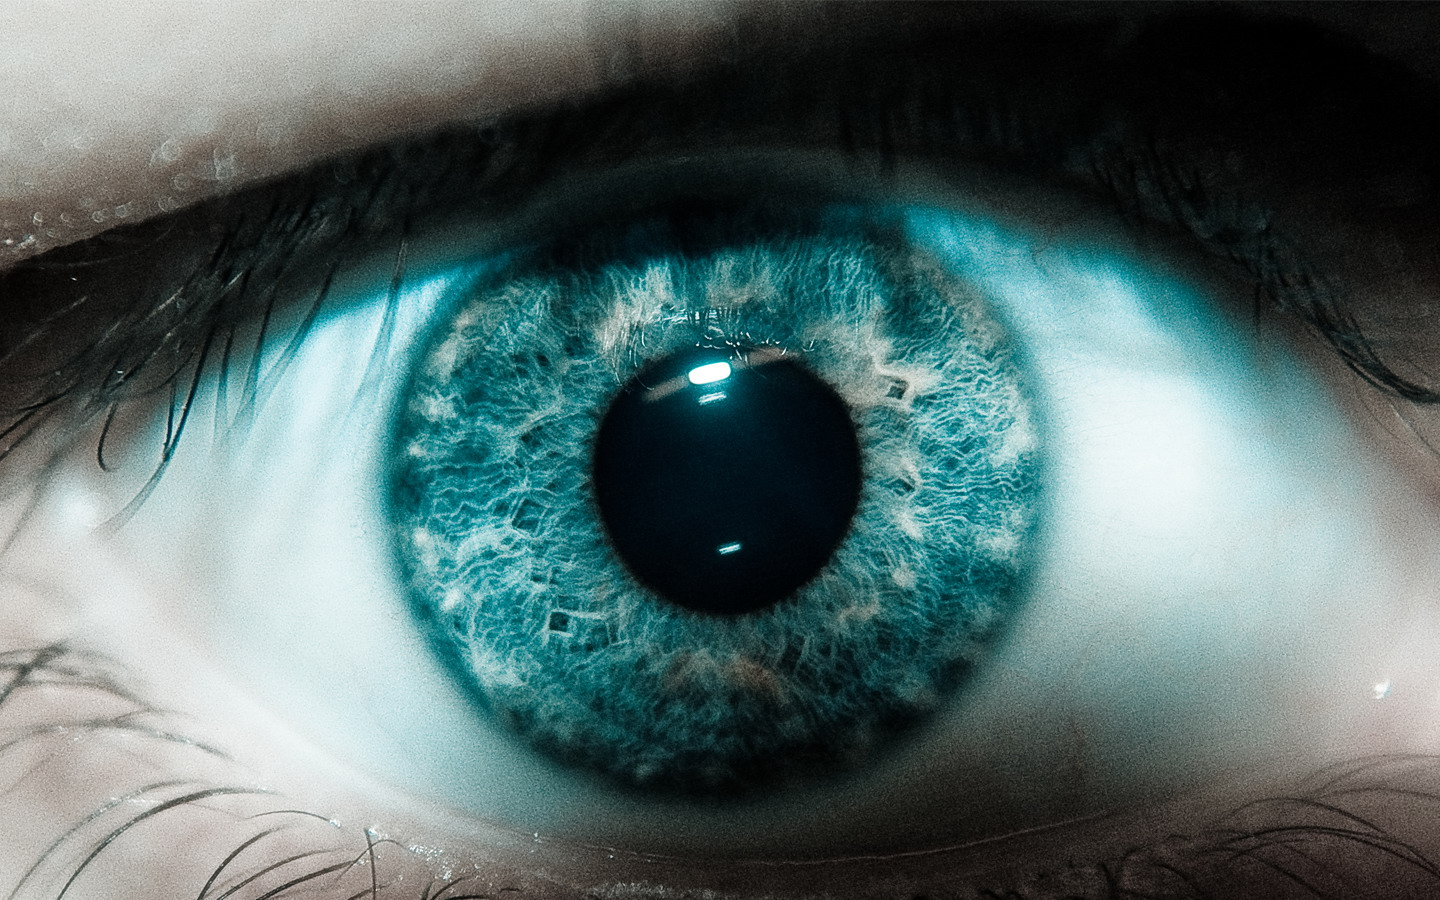 Scary Eye Wallpapers   HD Wallpapers 29128 1440x900